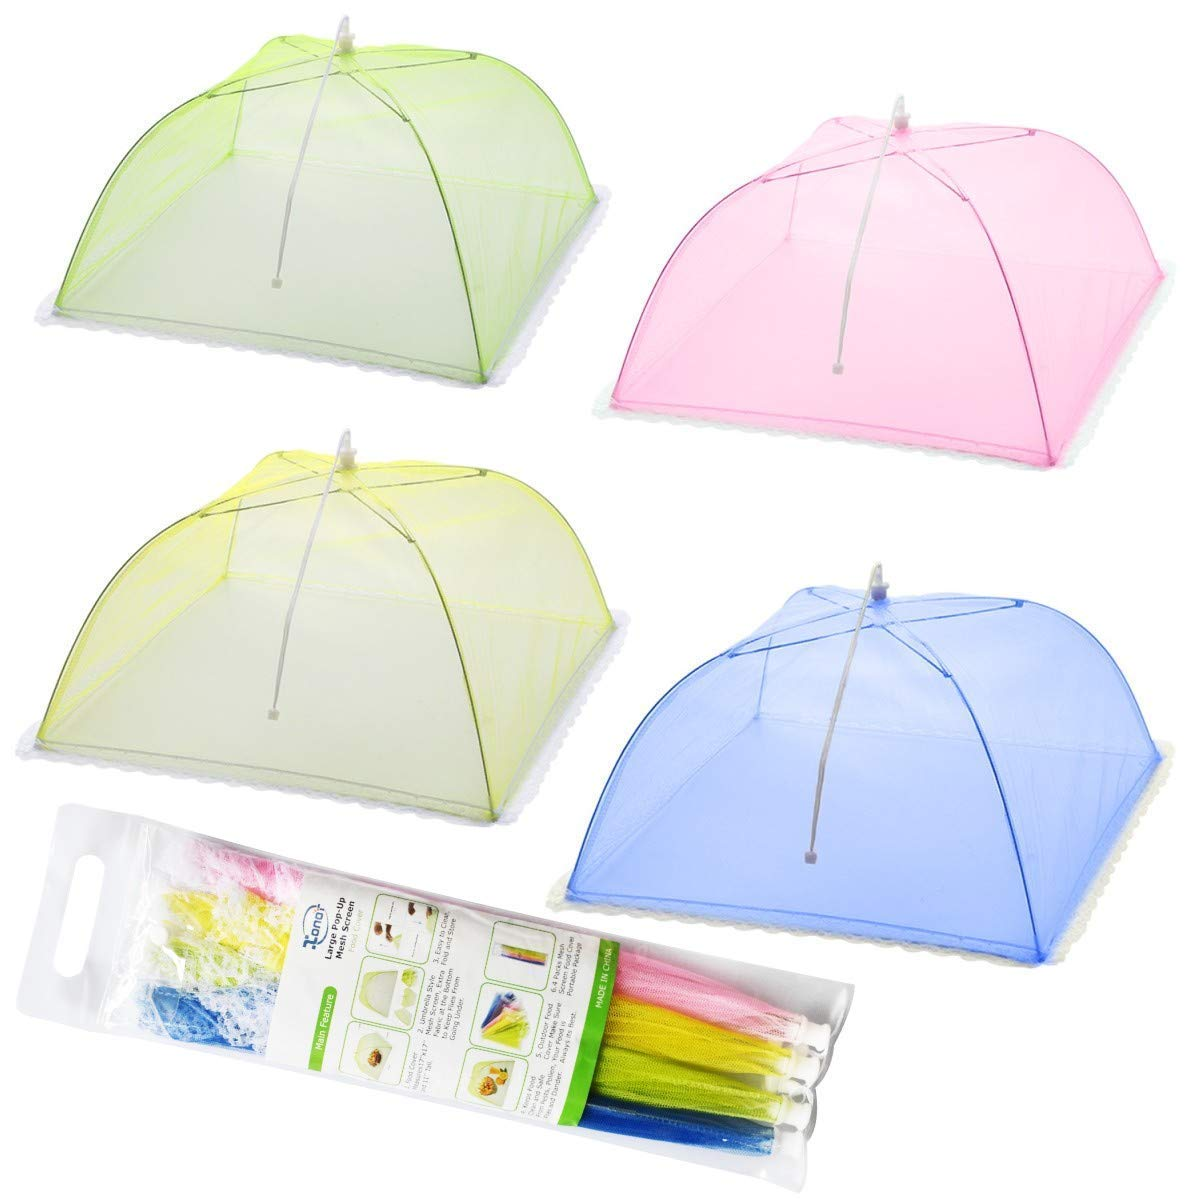 Mesh Screen Food Cover Tents - Set of 4 Umbrella Screens to Keep Bugs and Flies Away from Food at Picnics, BBQ & More - 4 Colors (Pink, Green, Blue, Yellow) XONOR